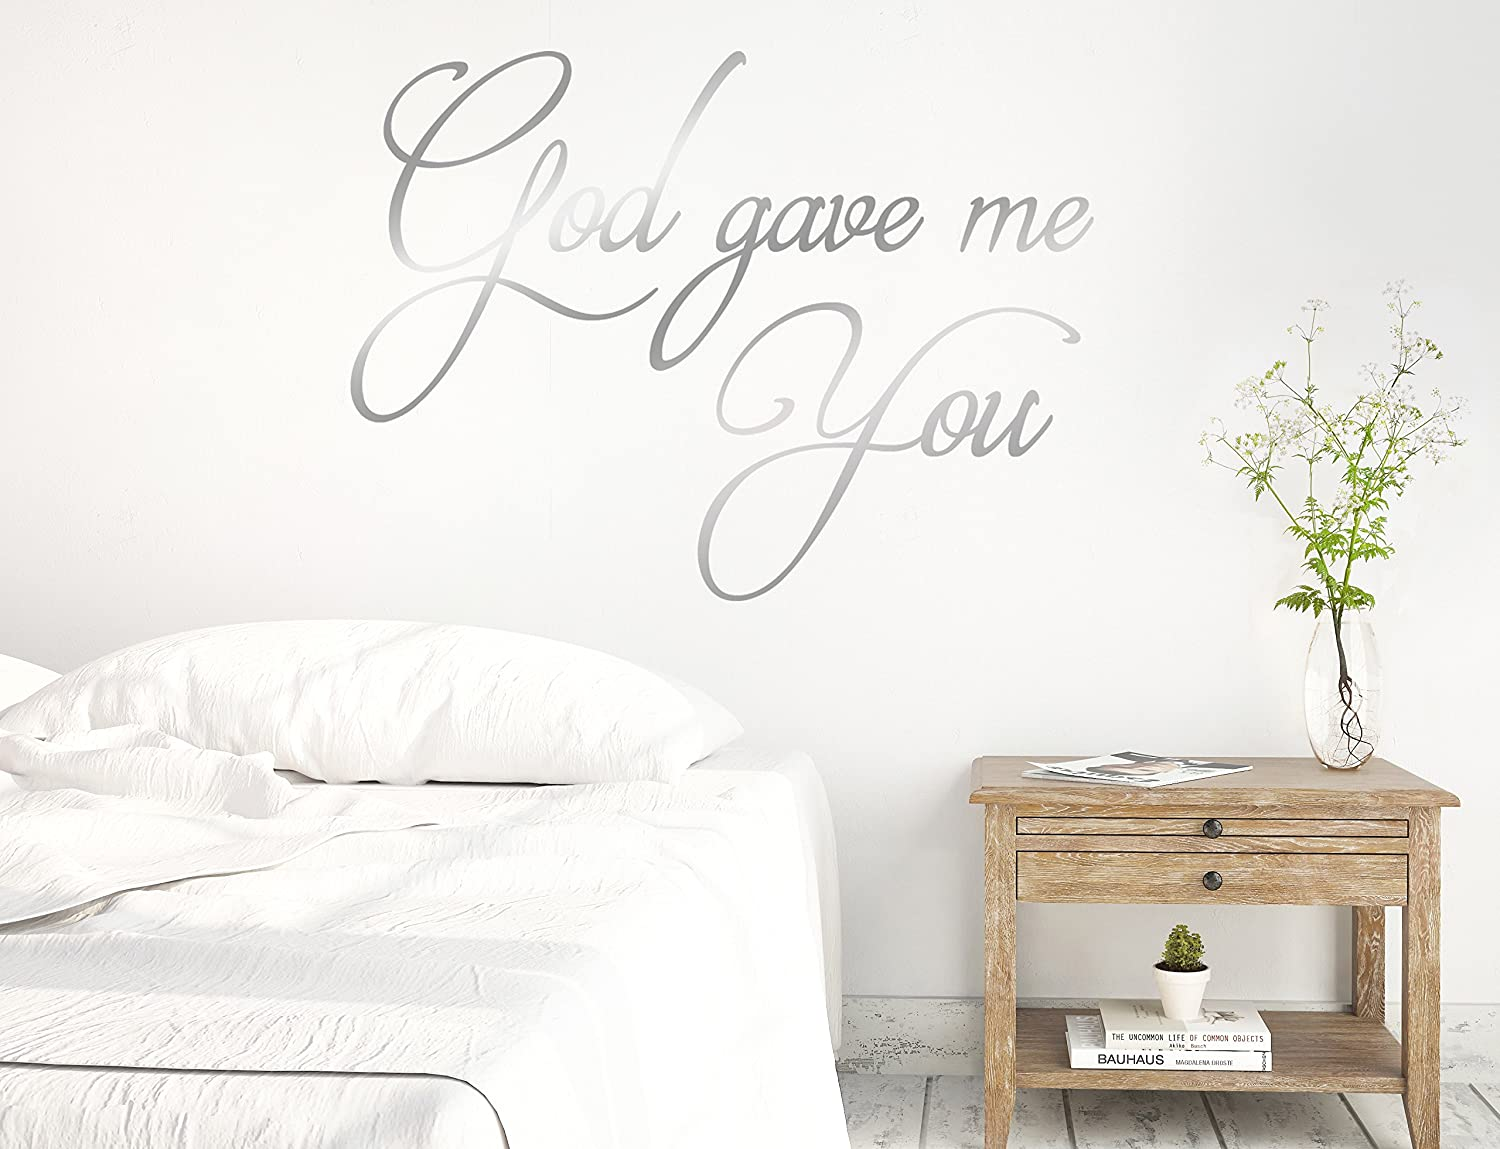 Bedroom Decal Home Decor Quote Every Love Story Bible Verse Marriage Wall Paper Party Supplies Stickers Labels Tags